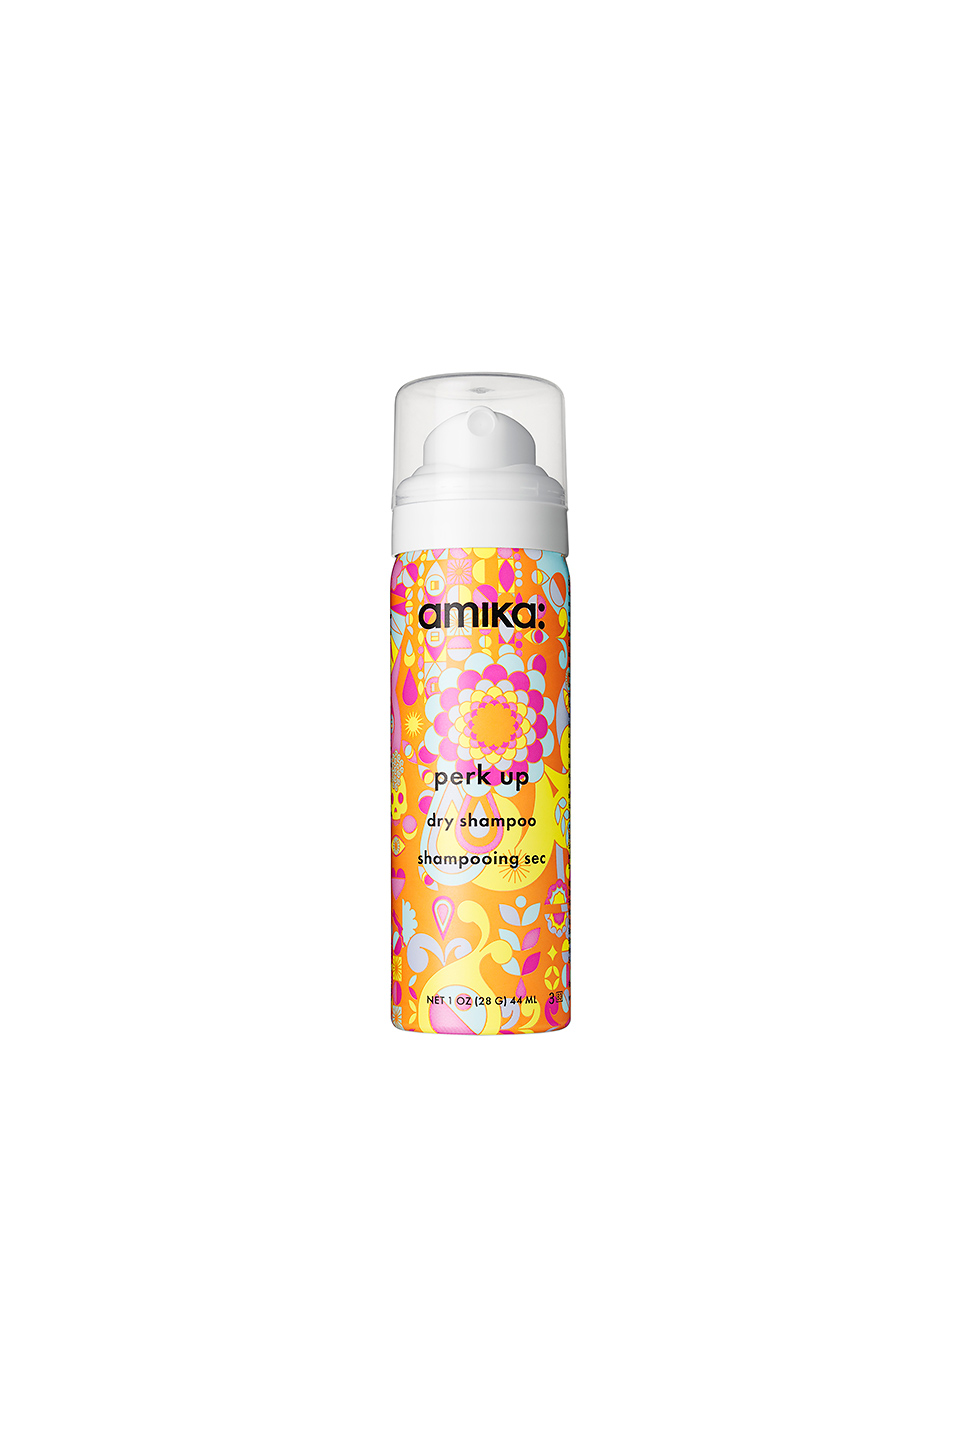 Amika Travel PERK UP Dry Shampoo in